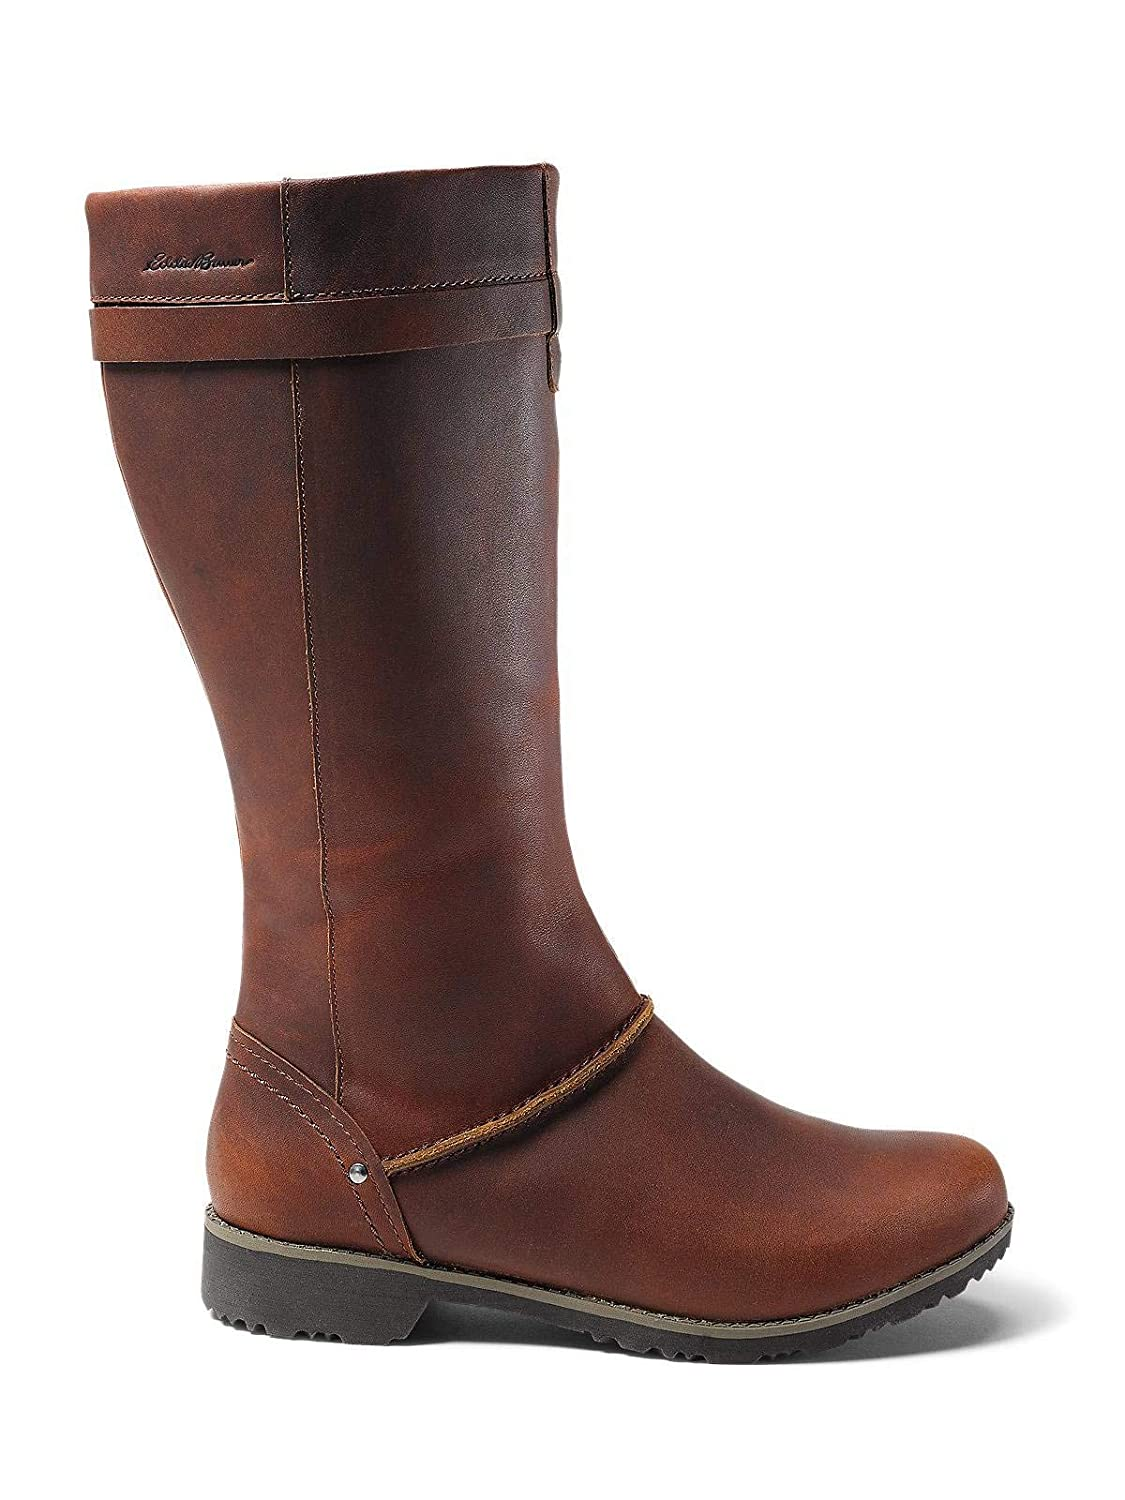 4df738a5a9b Amazon.com  Eddie Bauer Women s Trace Boot  Clothing